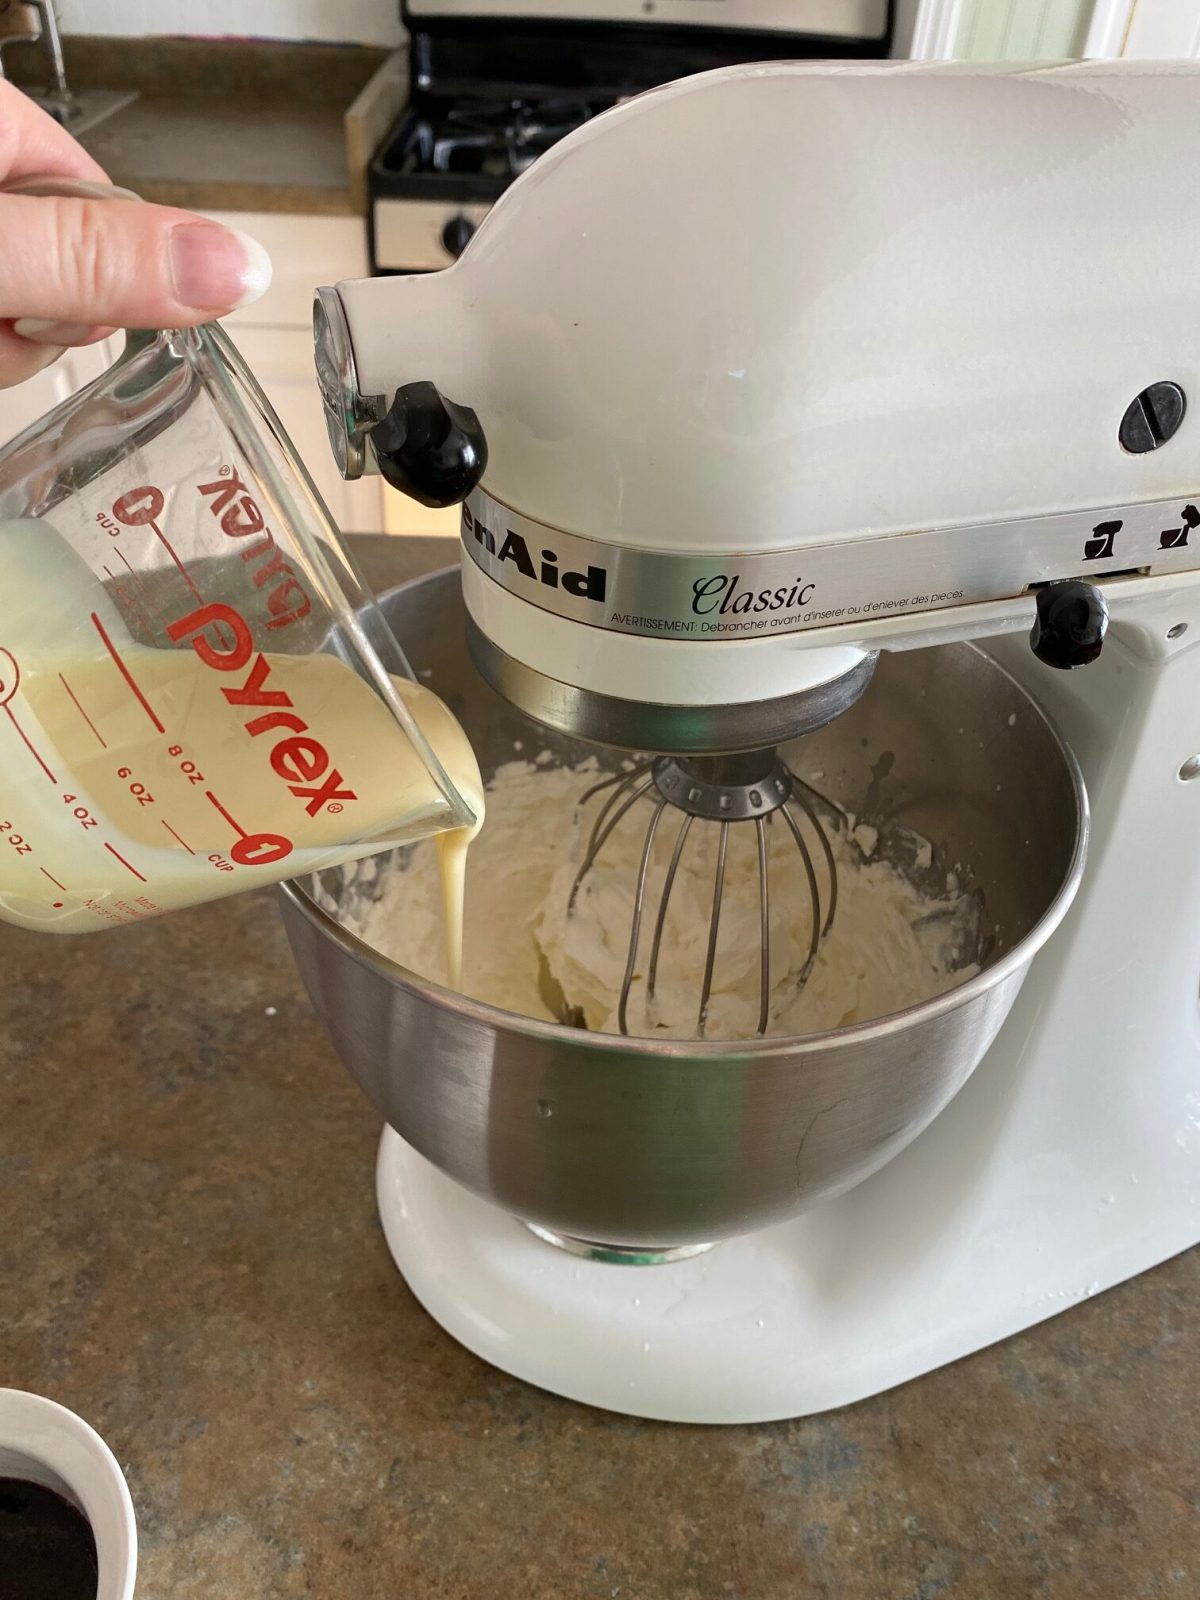 Cream cheese, heavy cream and sweetened condensed milk are added to a stand mixer. #blackberrycheesecakeicecream #nochurnicecreamrecipe #icecreamrecipes #blackberryrecipes #homemadeicecream